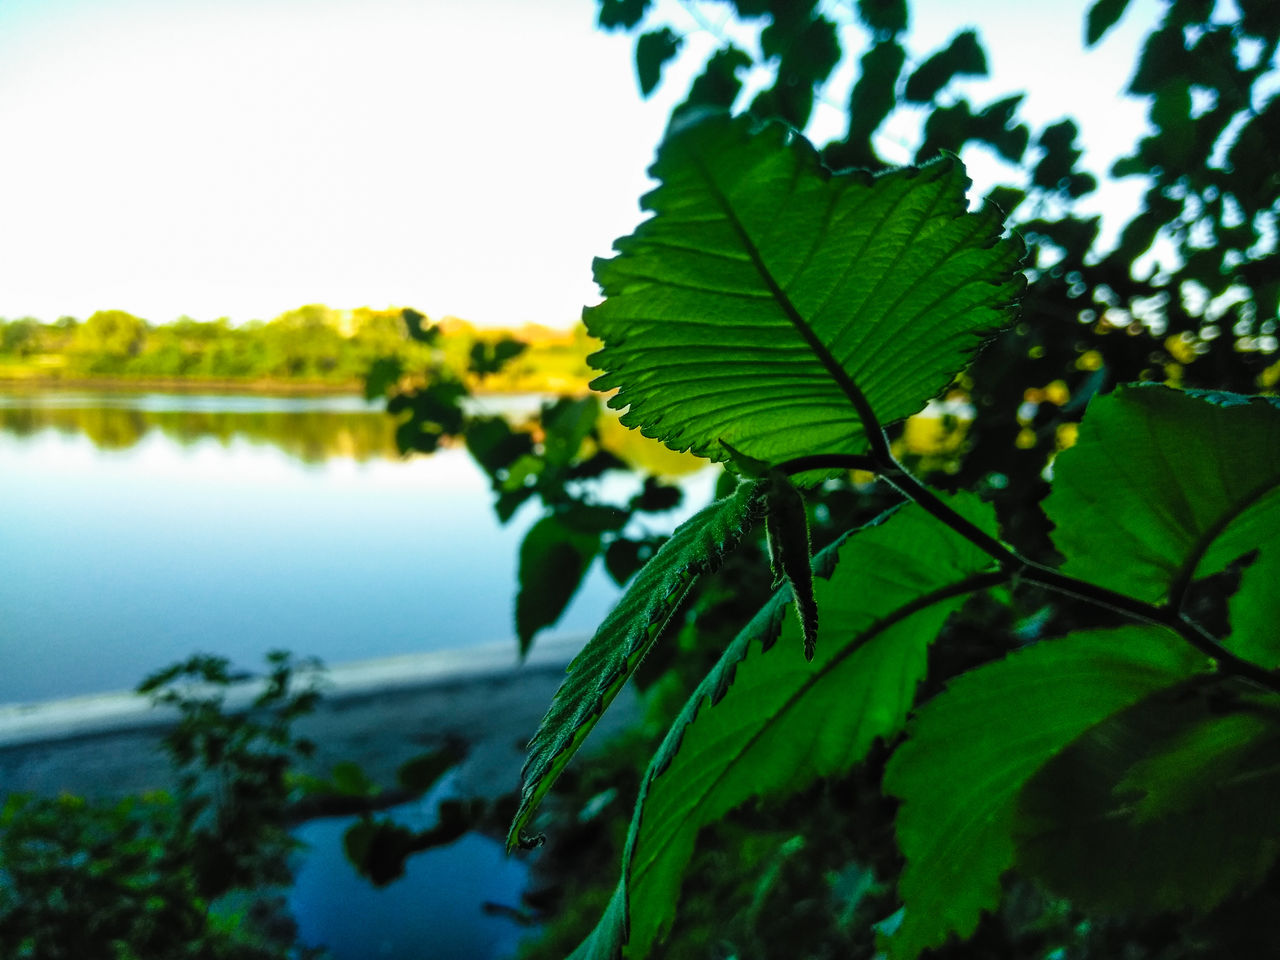 plant, plant part, leaf, nature, growth, sky, beauty in nature, water, focus on foreground, close-up, no people, green color, day, tree, tranquility, reflection, outdoors, lake, clear sky, leaves